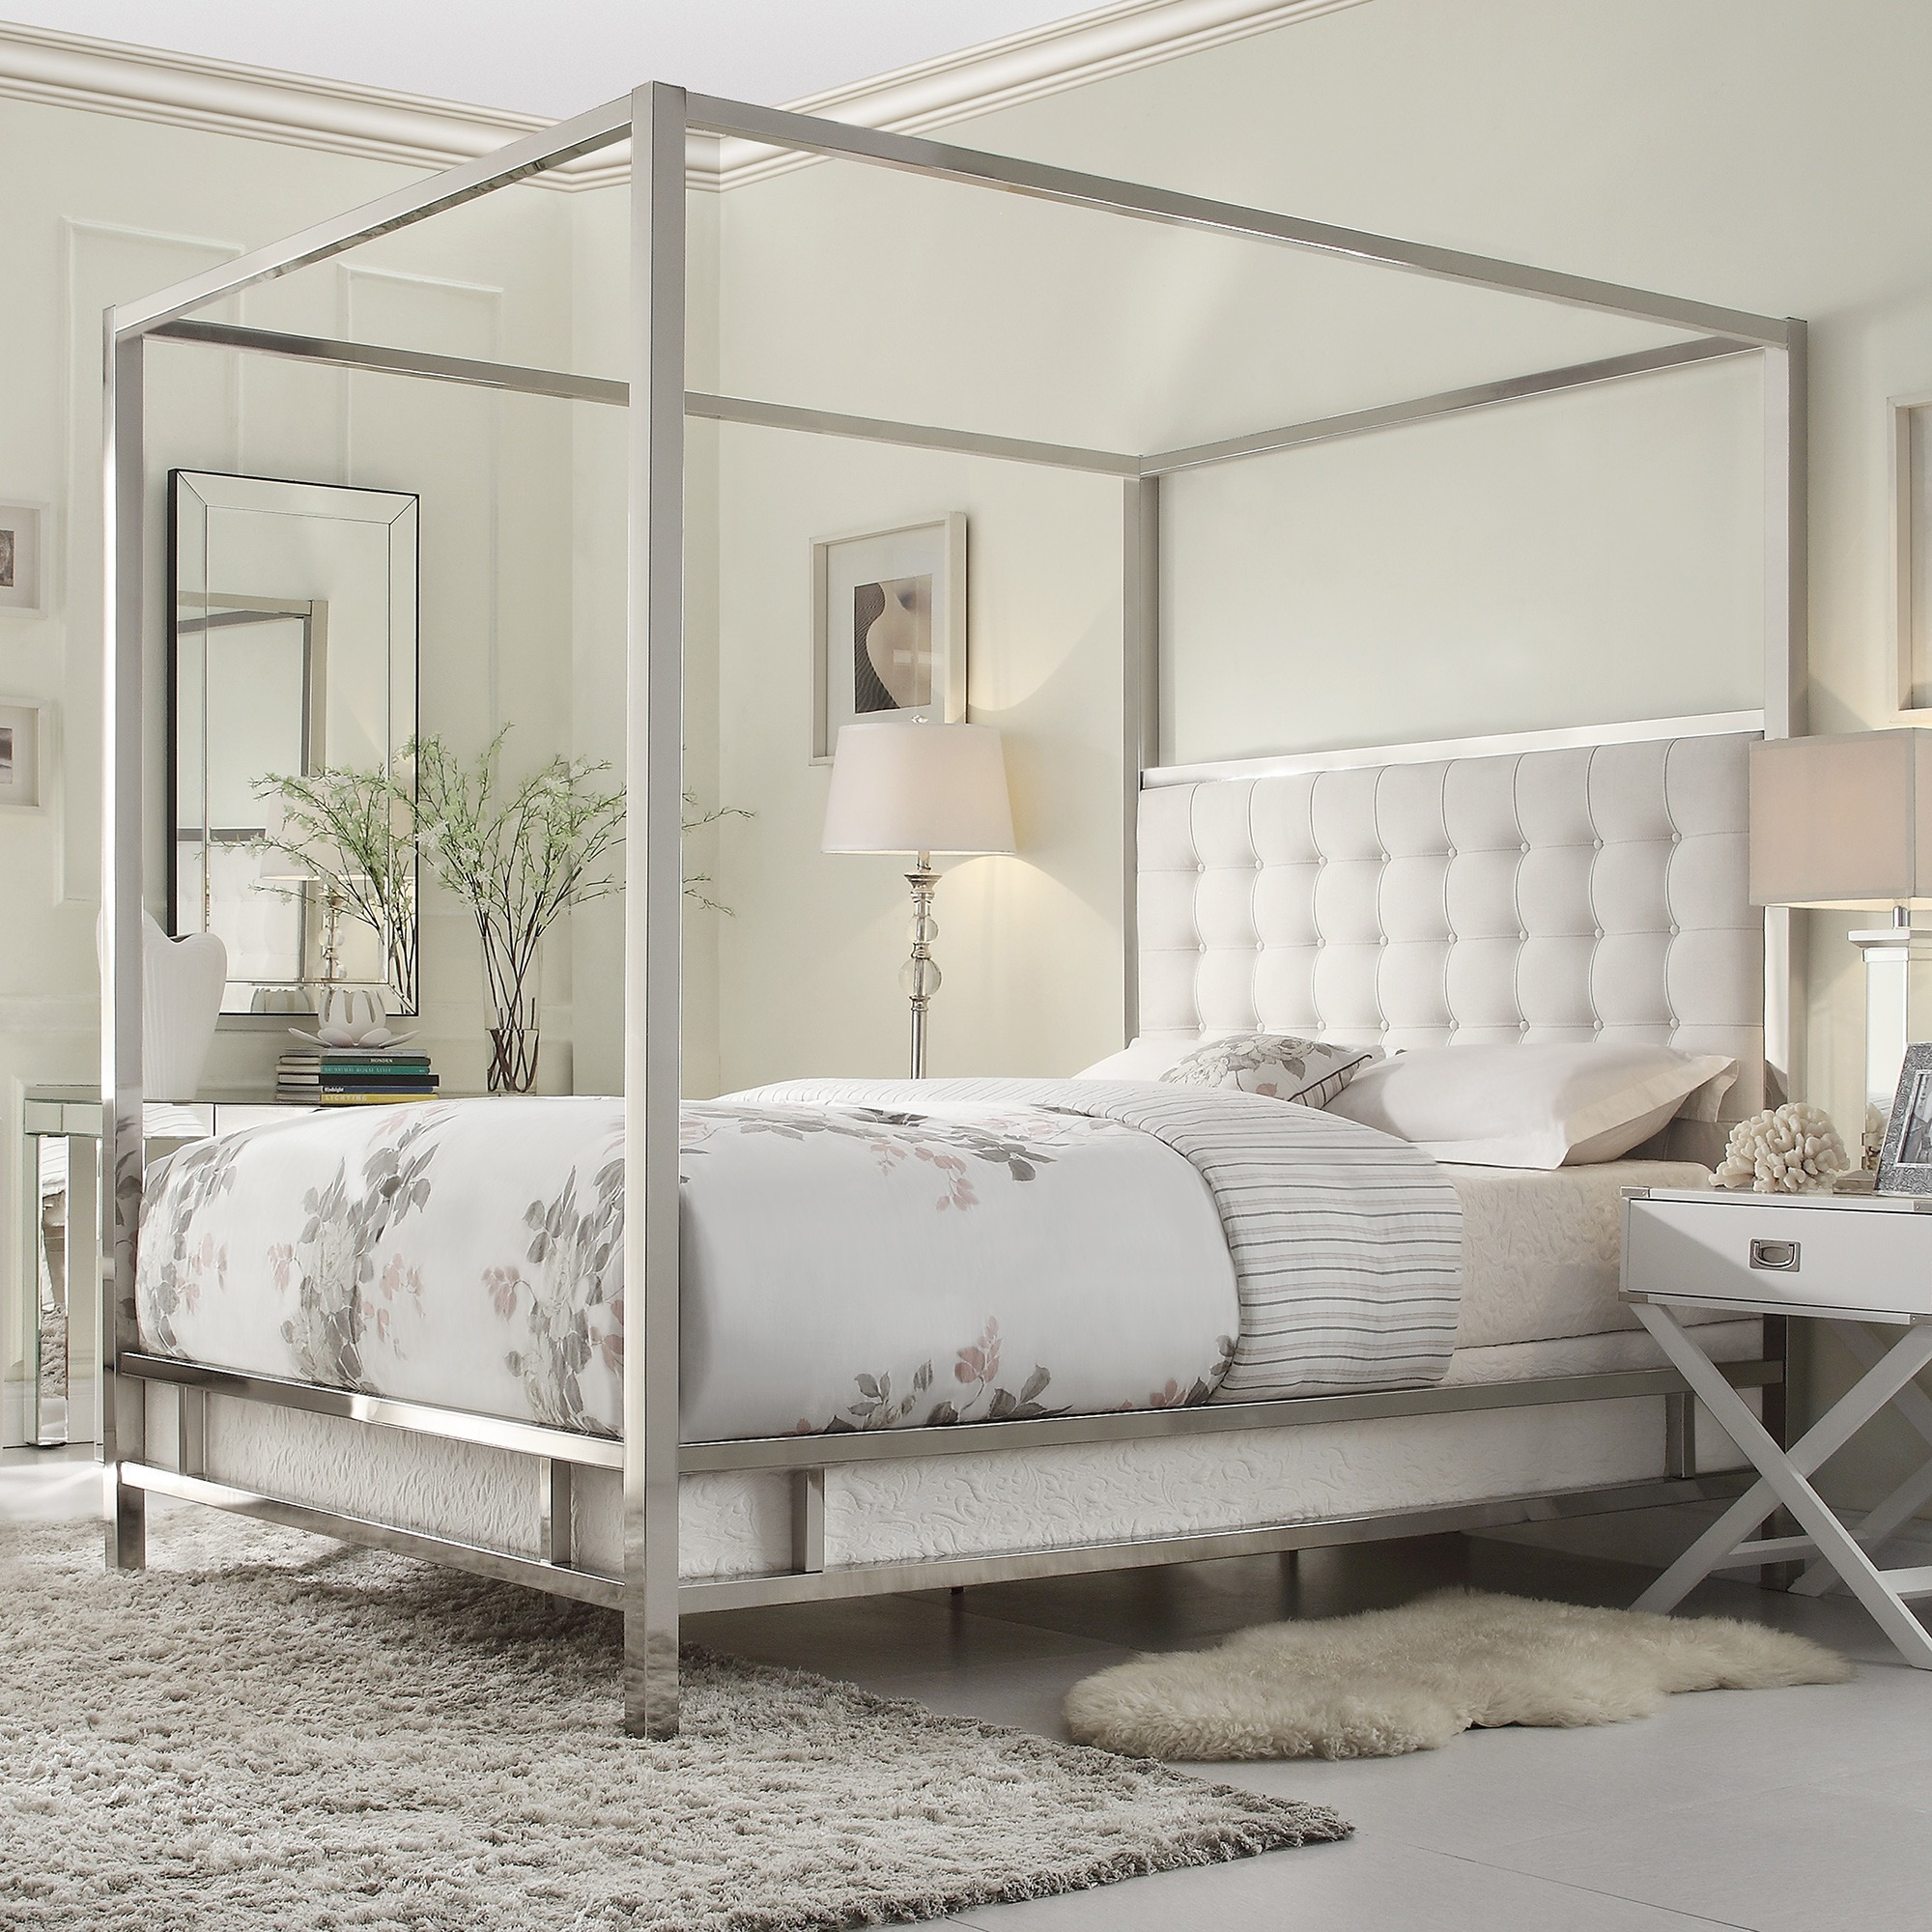 Four Poster Queen Size Bed The Look For Less Swanky And Elegant Four Poster Bed